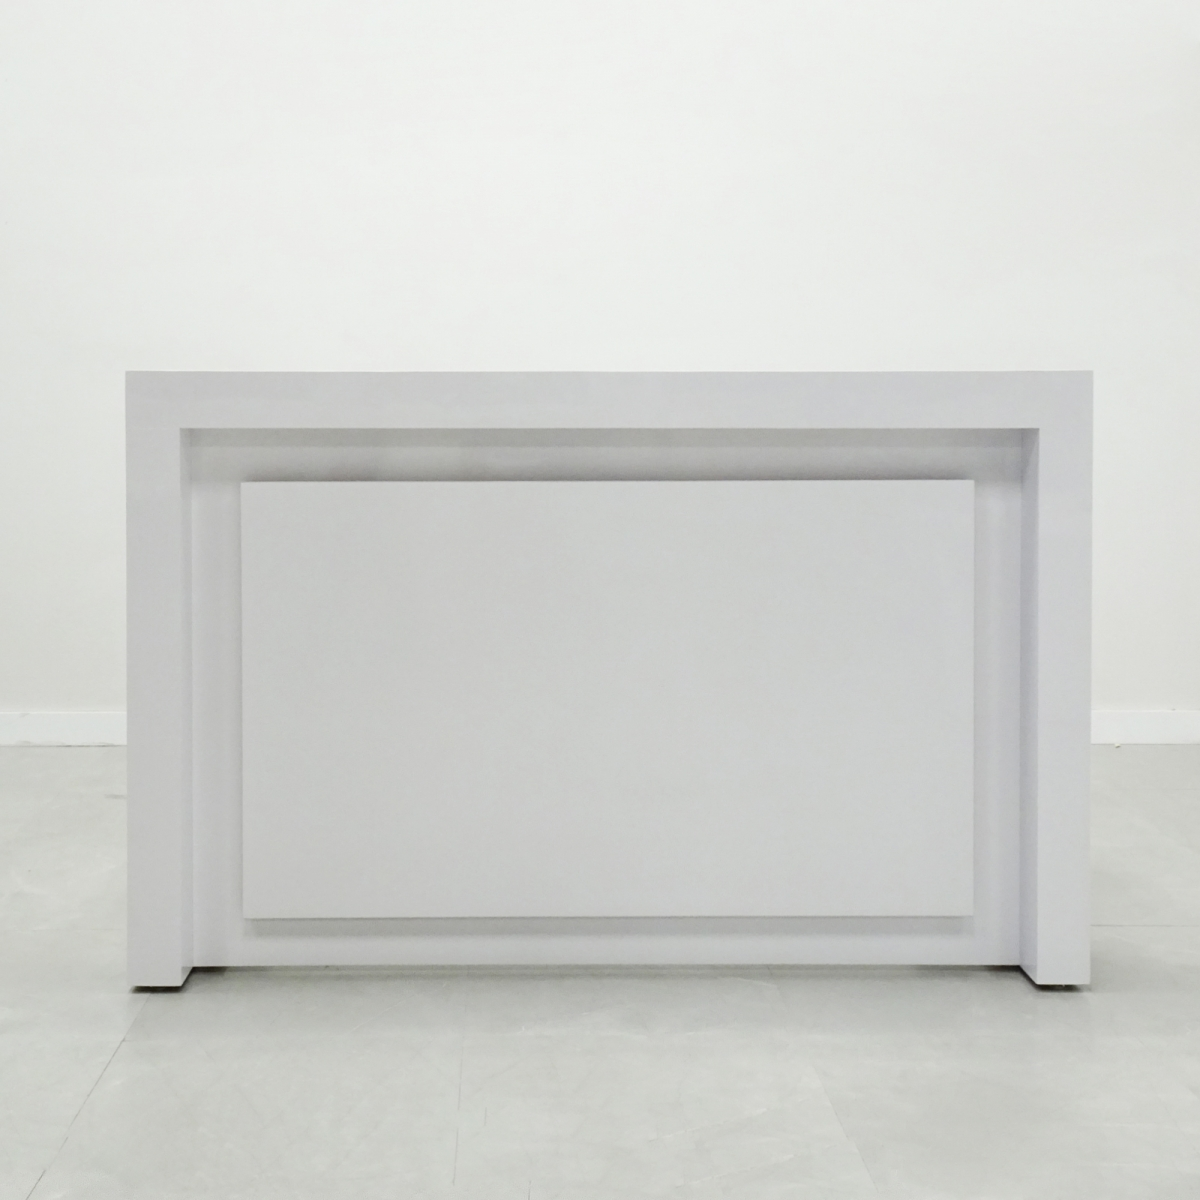 92 In. New York Reception Desk in White Glass Laminate